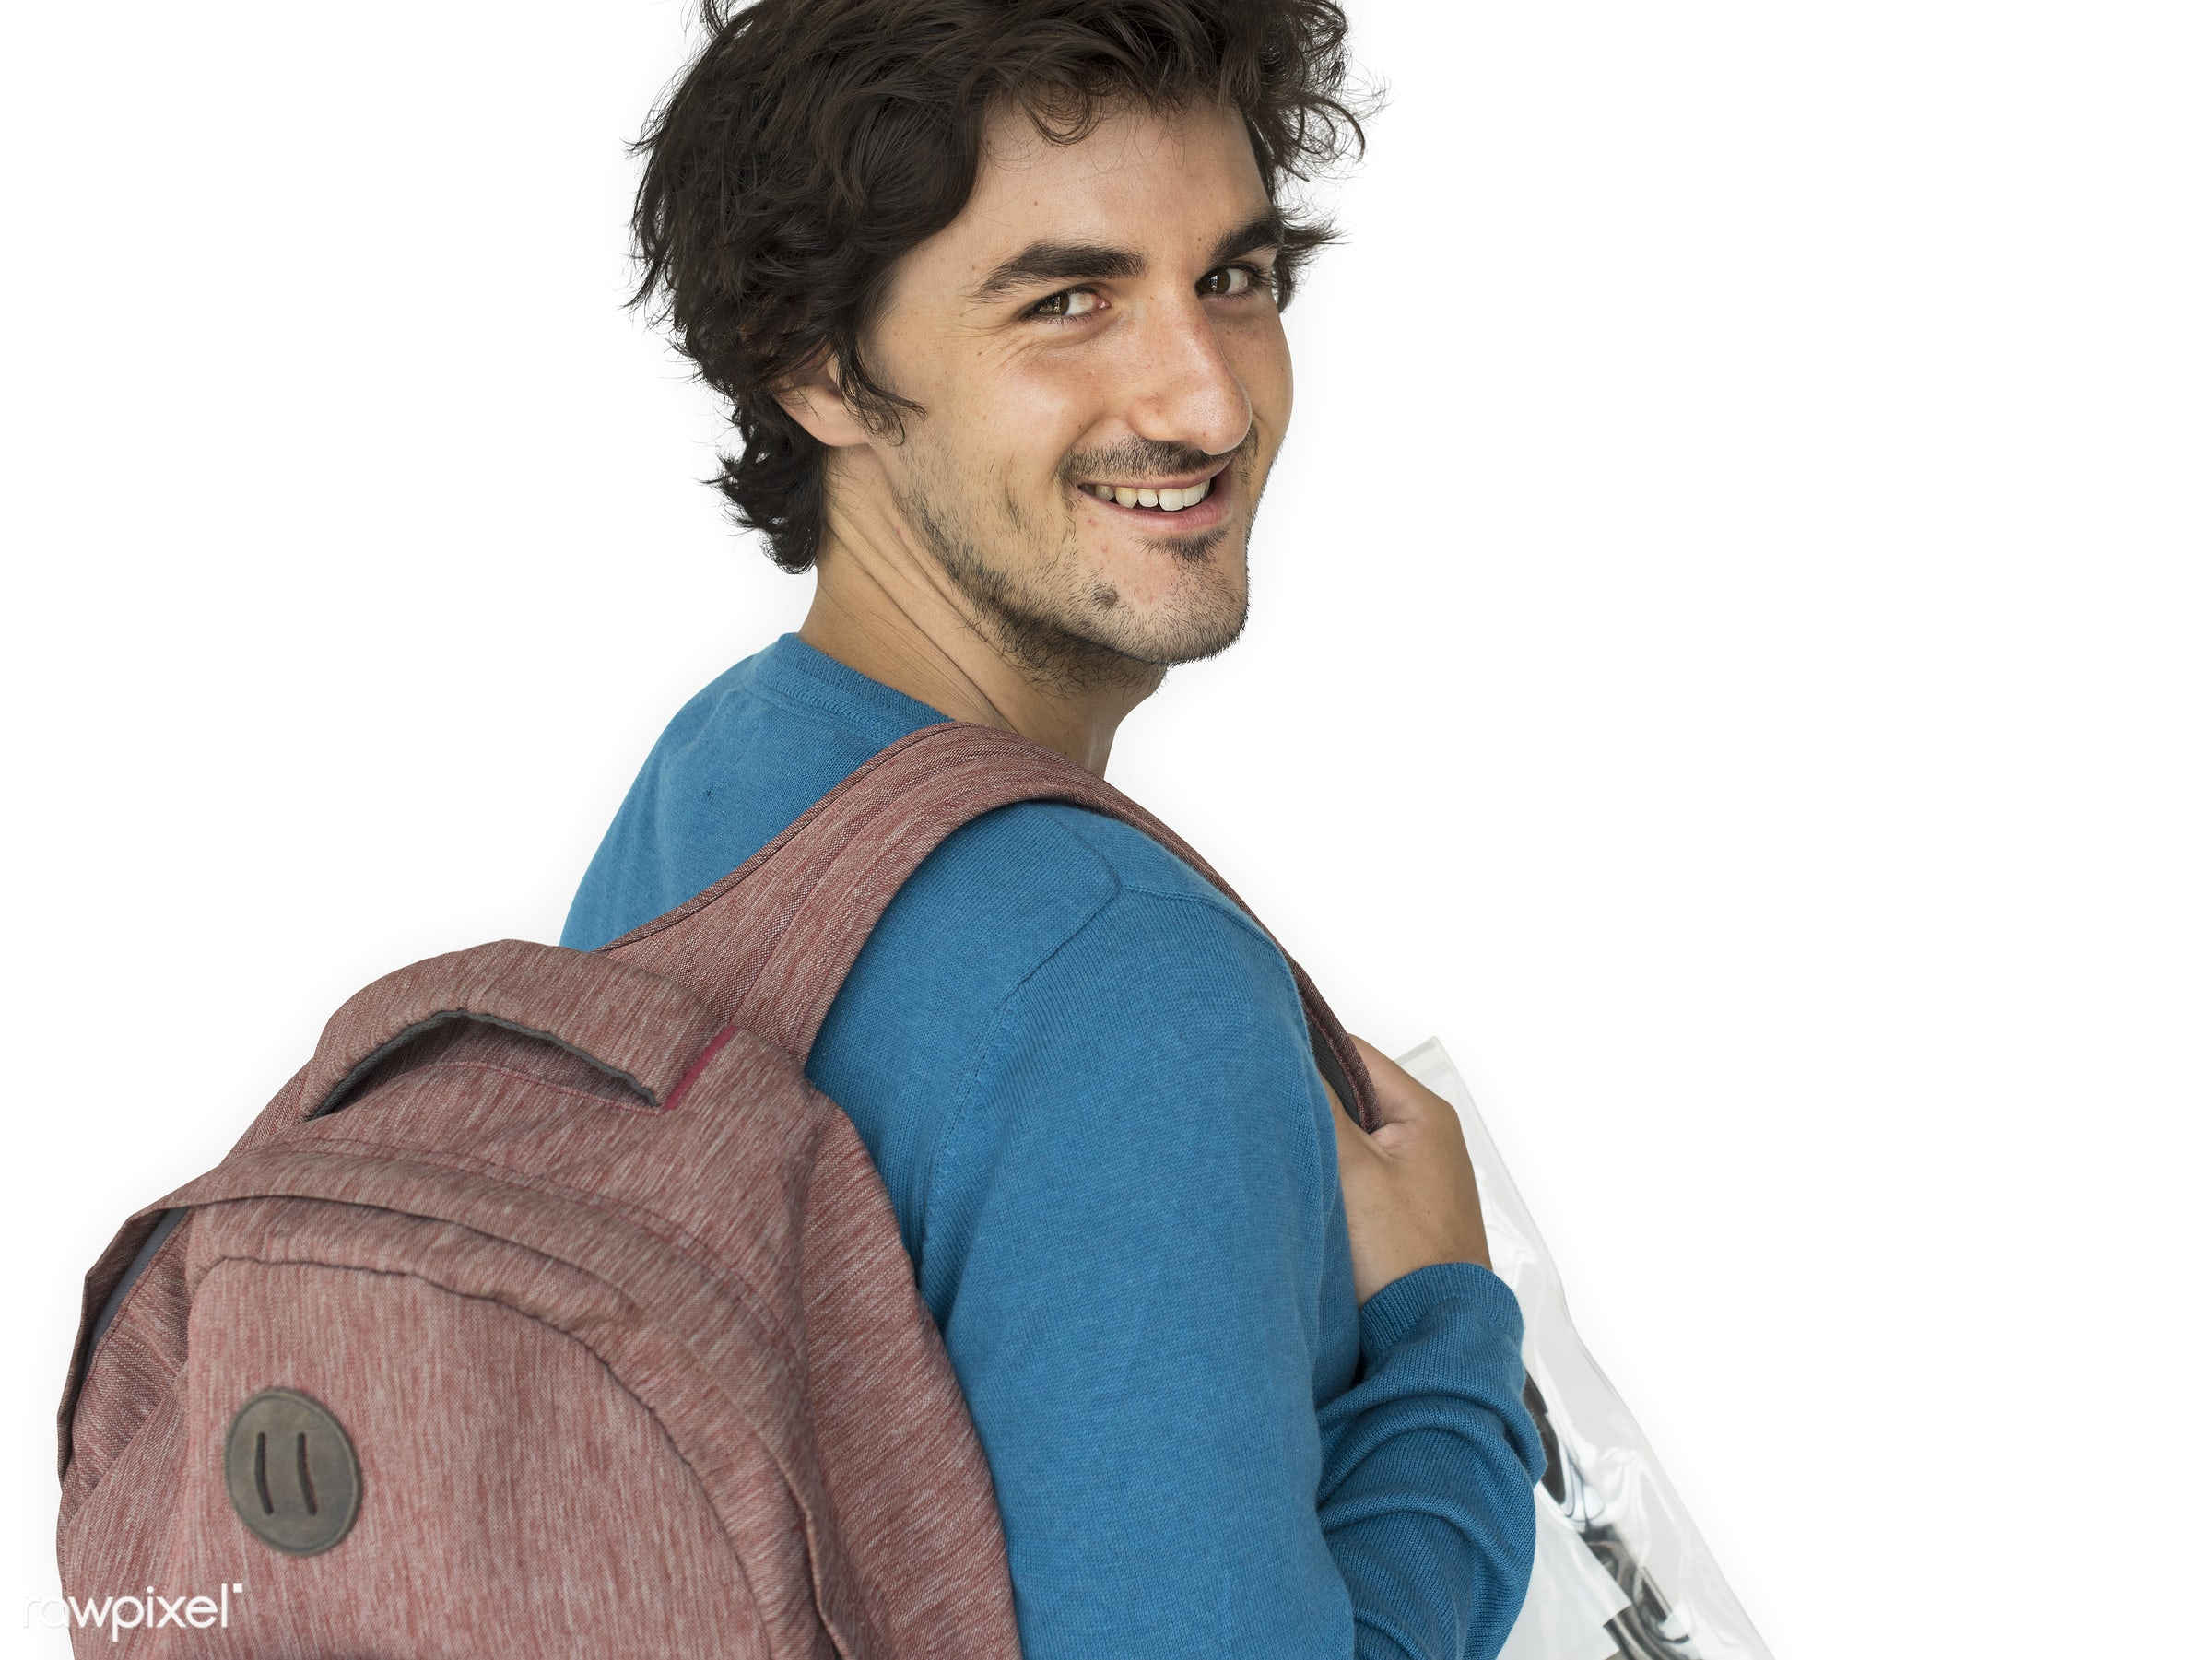 studio, expression, pastel, person, eart tones, vibrant, people, caucasian, lifestyle, schoolbag, positive, smile, cheerful...